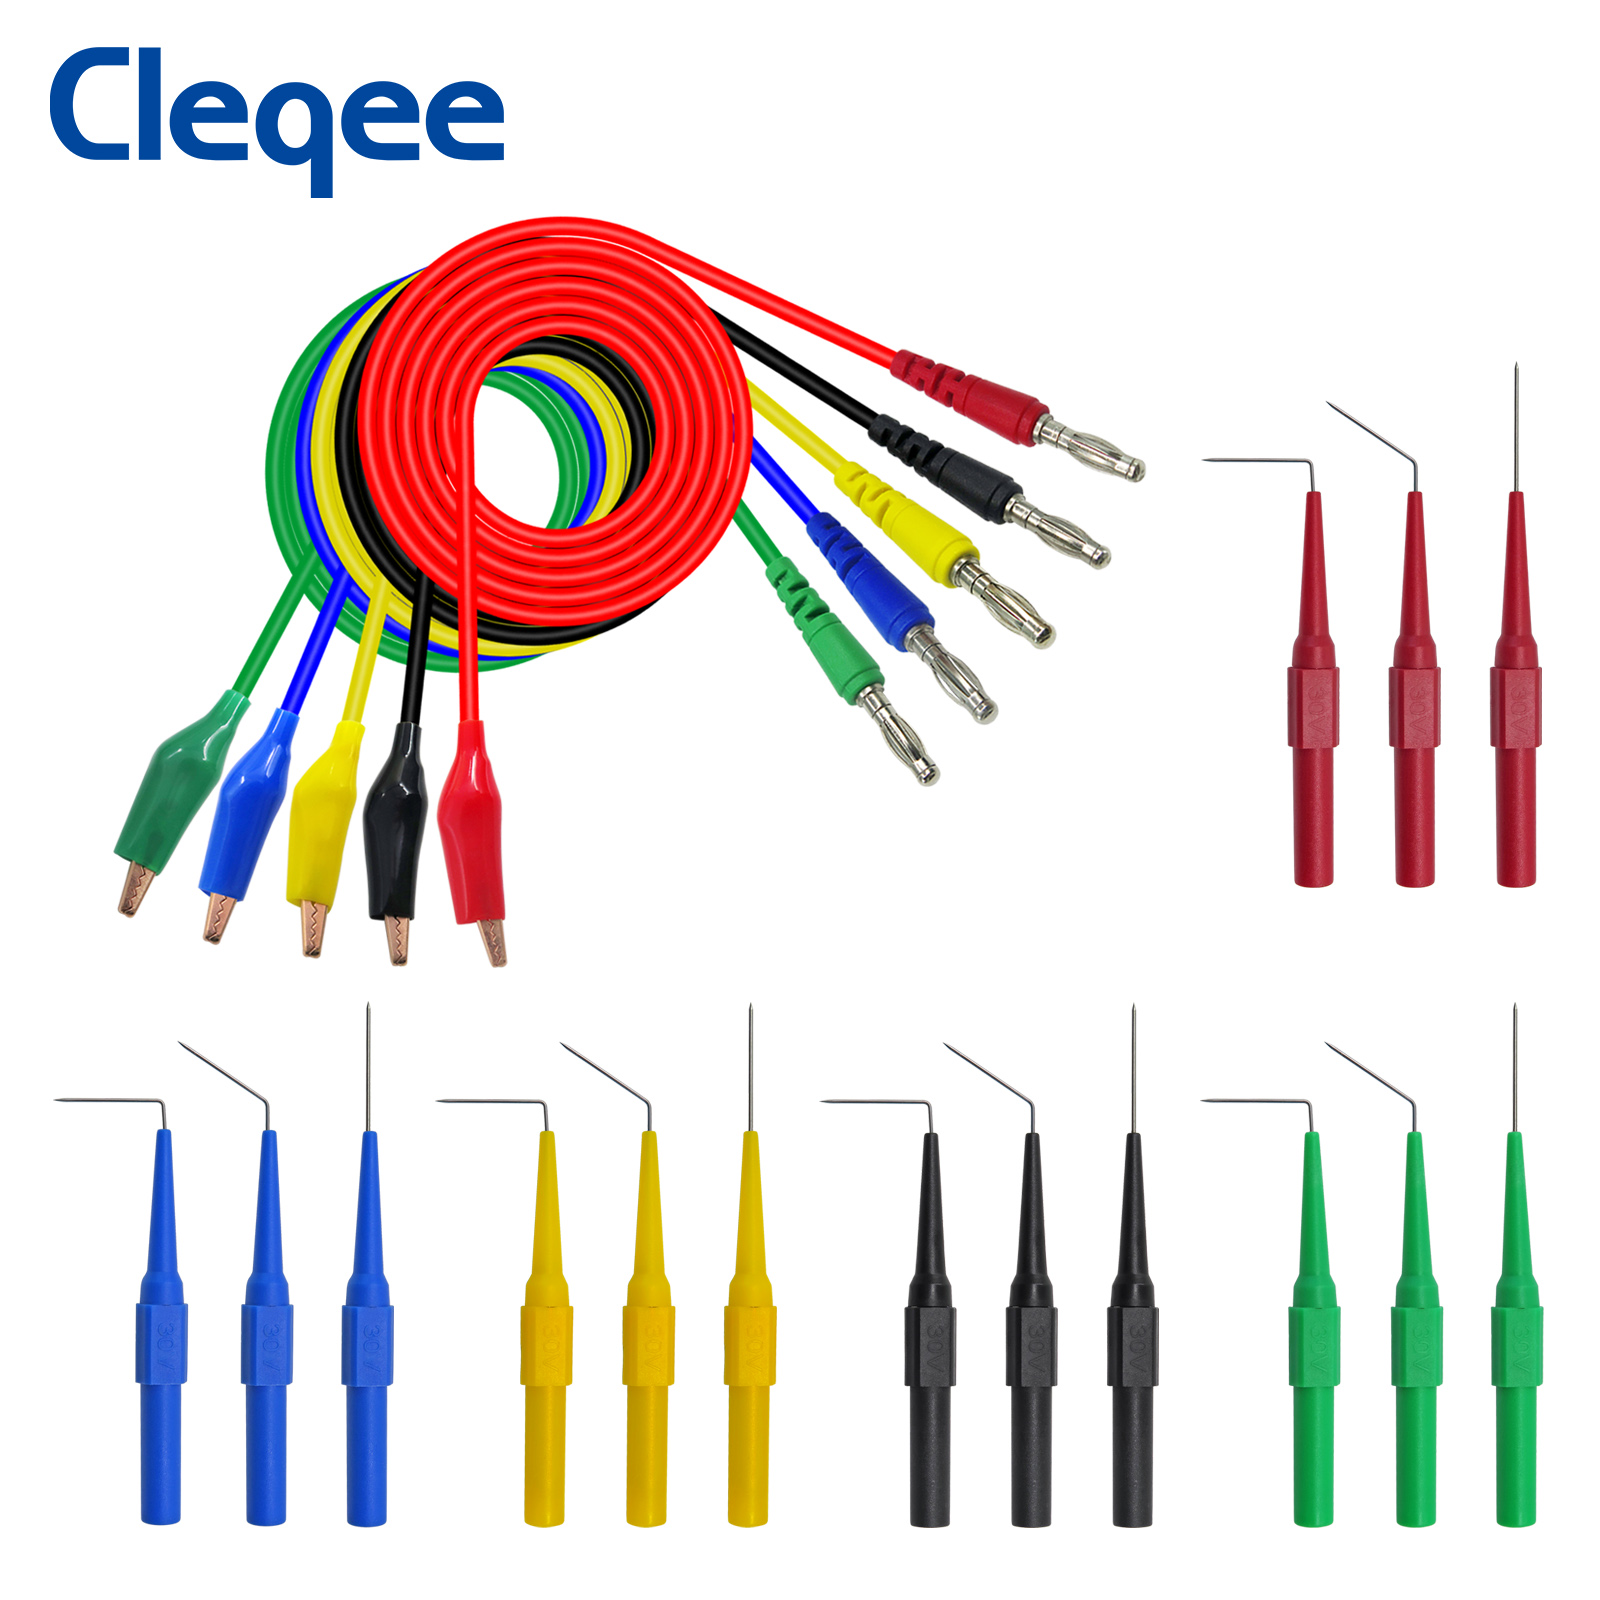 Cleqee P1920 Alligator clip to Banana plug test lead test probe connect to 4mm banana plug for electrical back probe kit